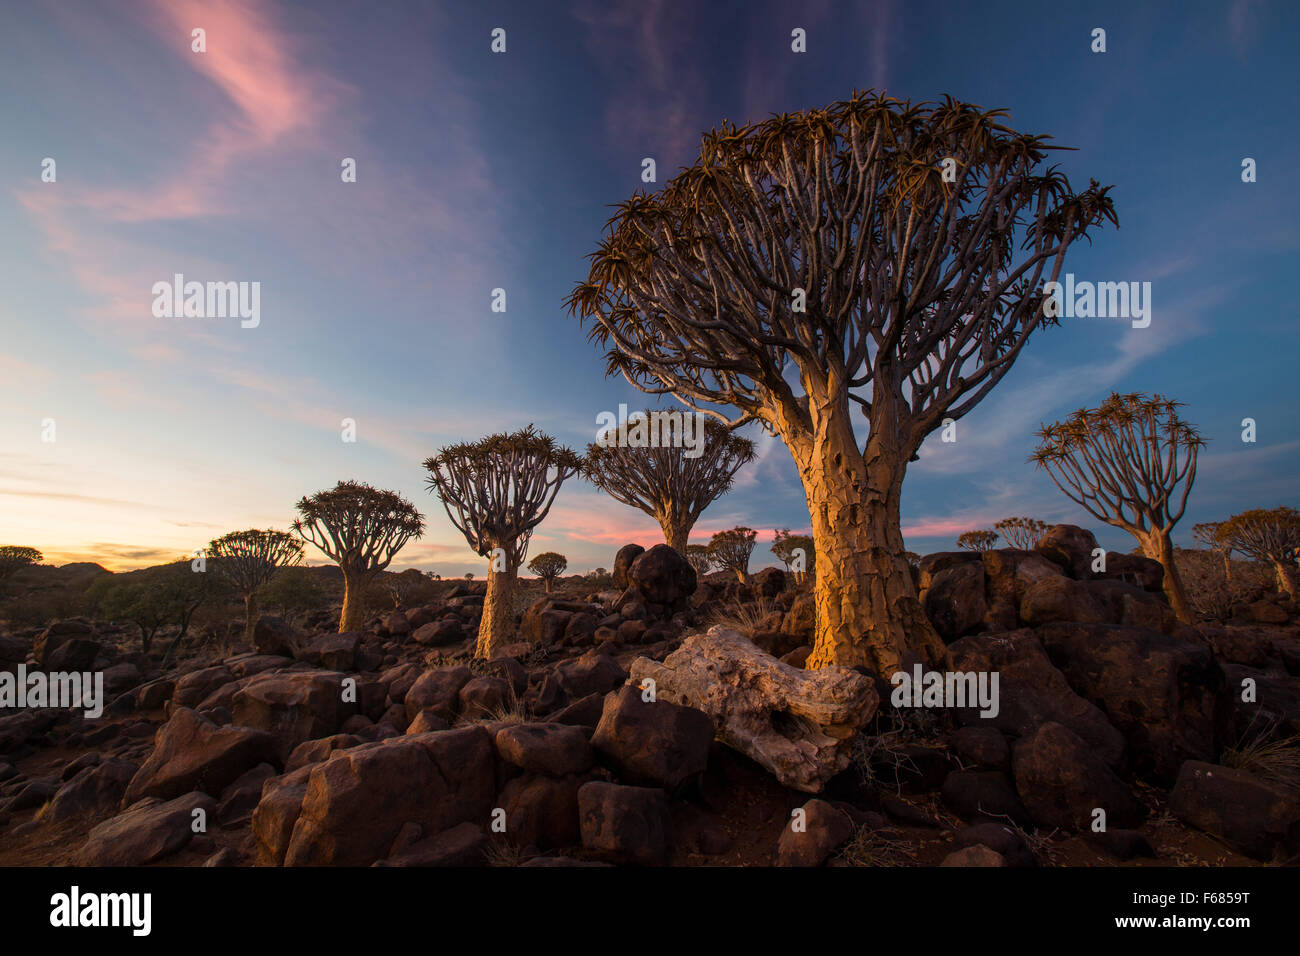 Quiver Tree Forest National Monument at sunset, Namibia, Africa Stock Photo